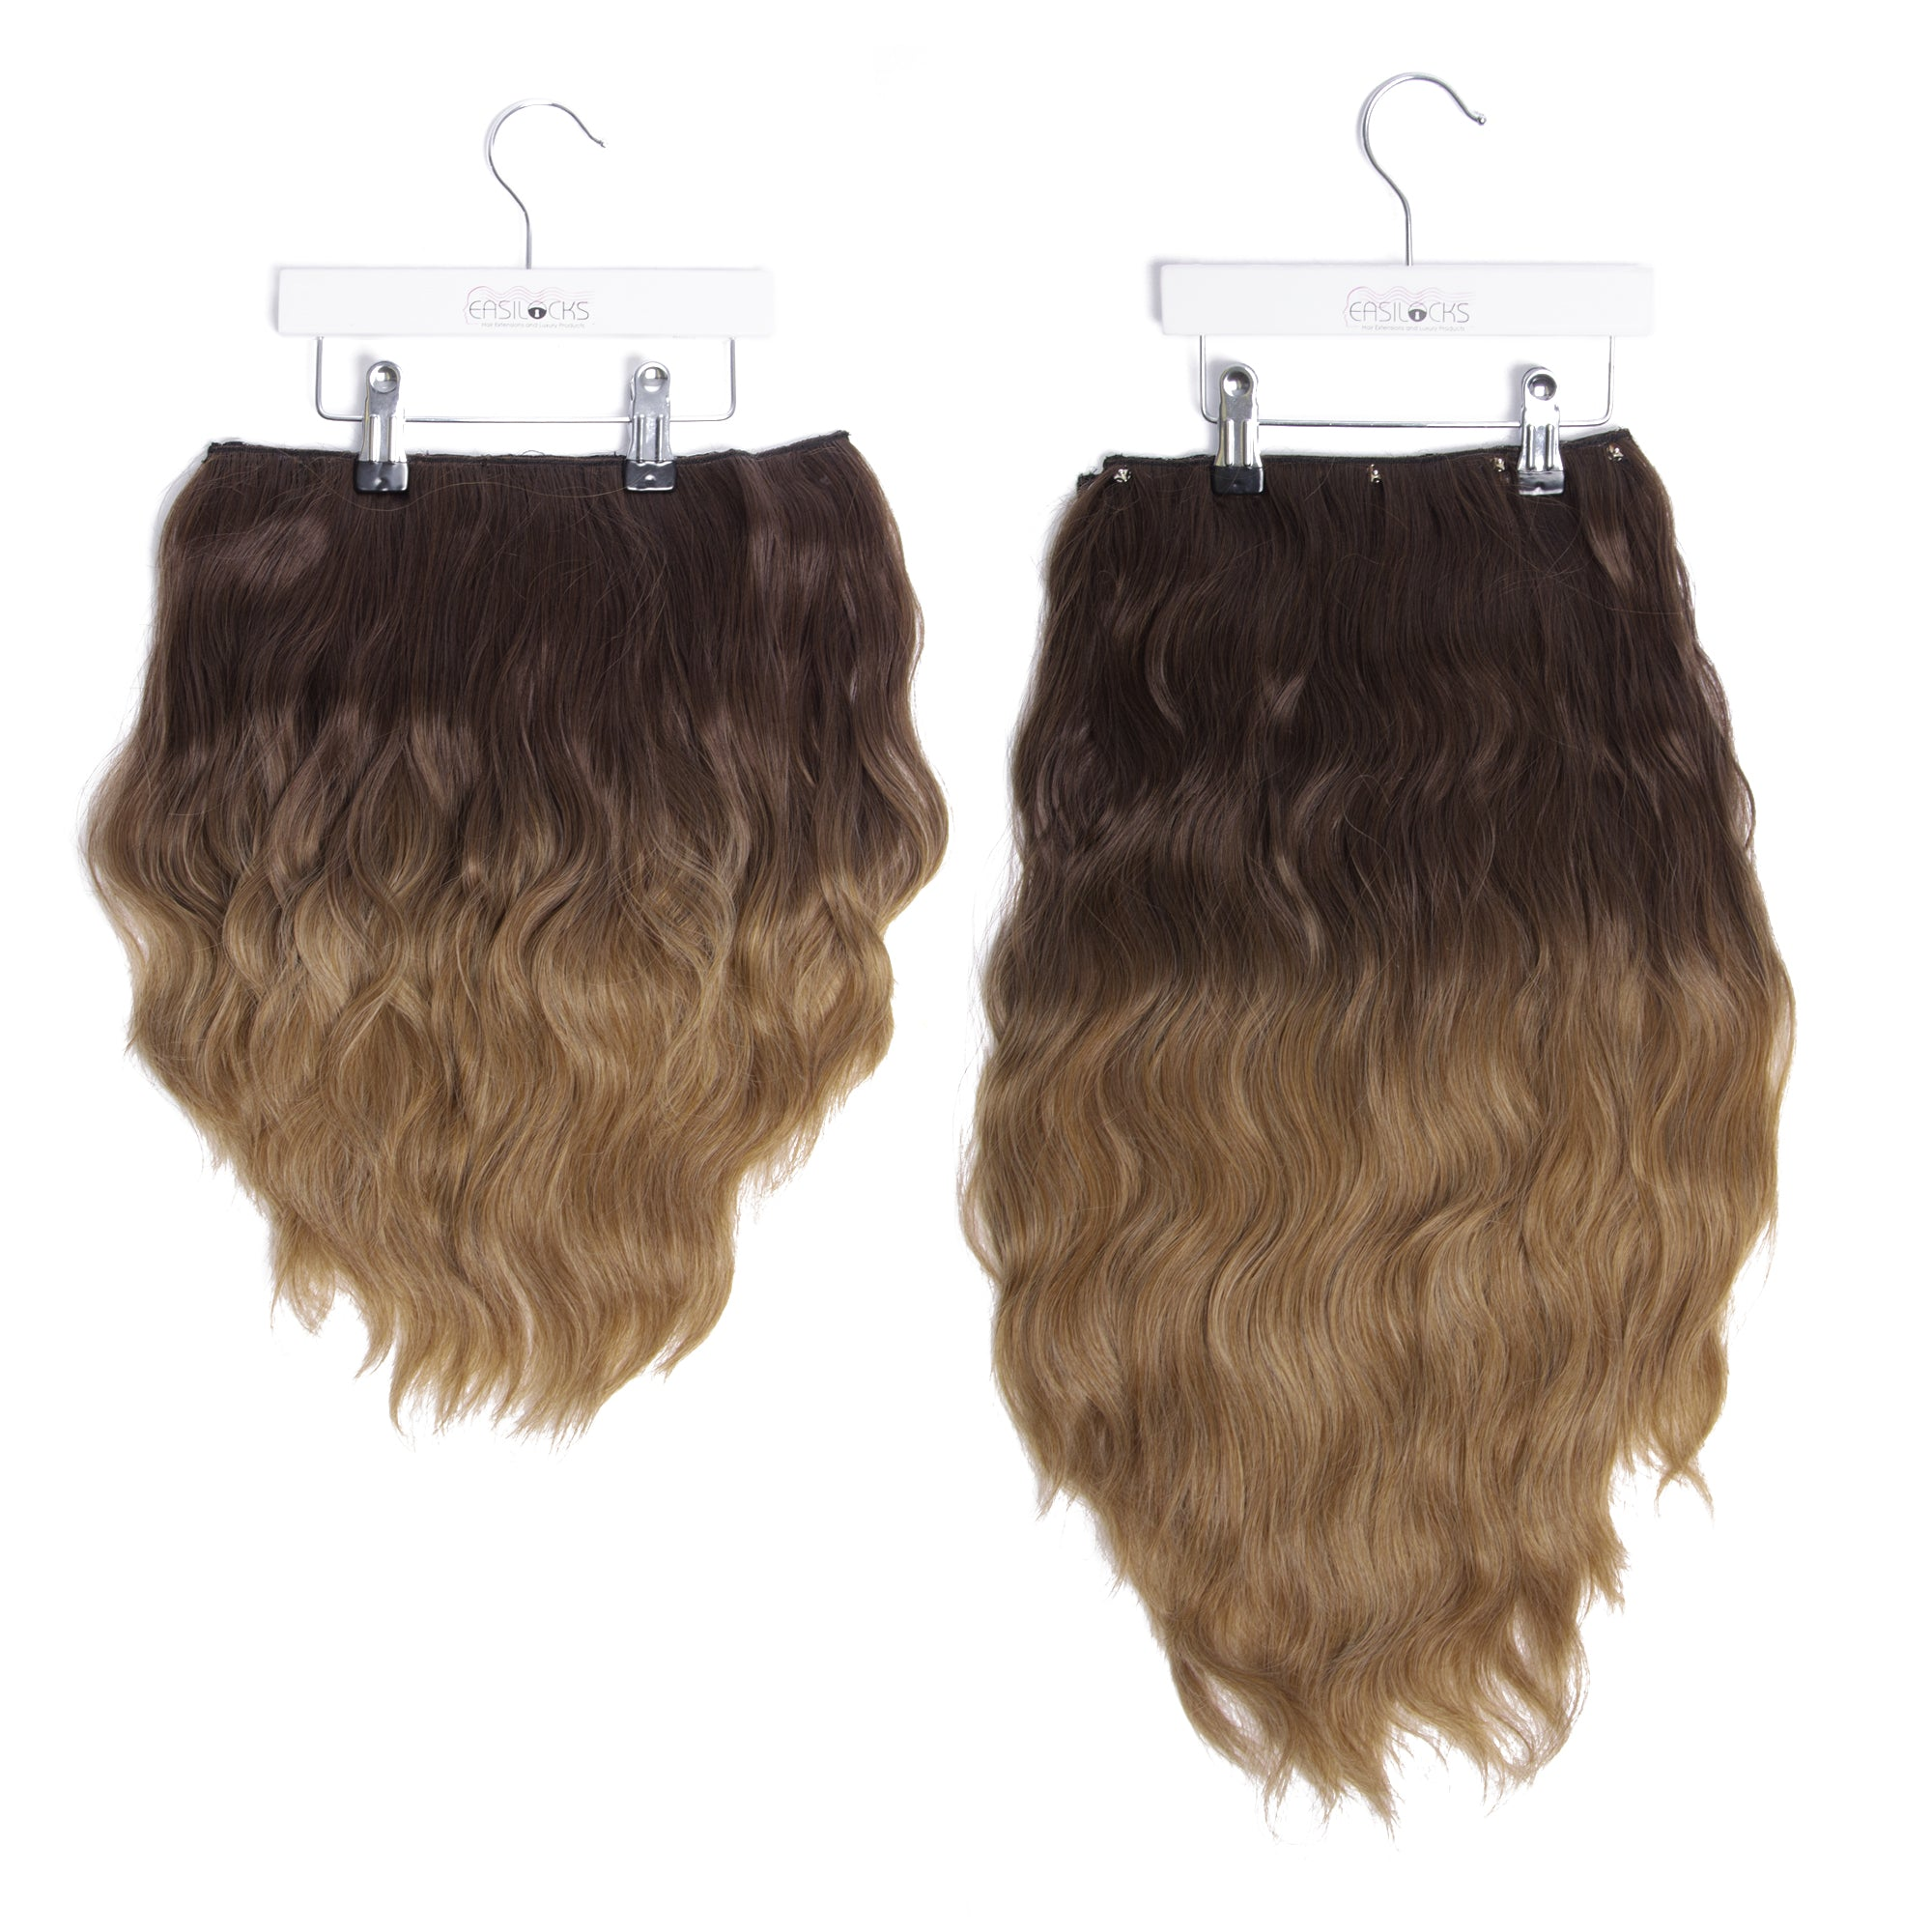 "Miracle Makeover HD Fibre Clip In Hair Extensions - 14"" & 22"" - Medium Brown Ombre (1319143931984)"